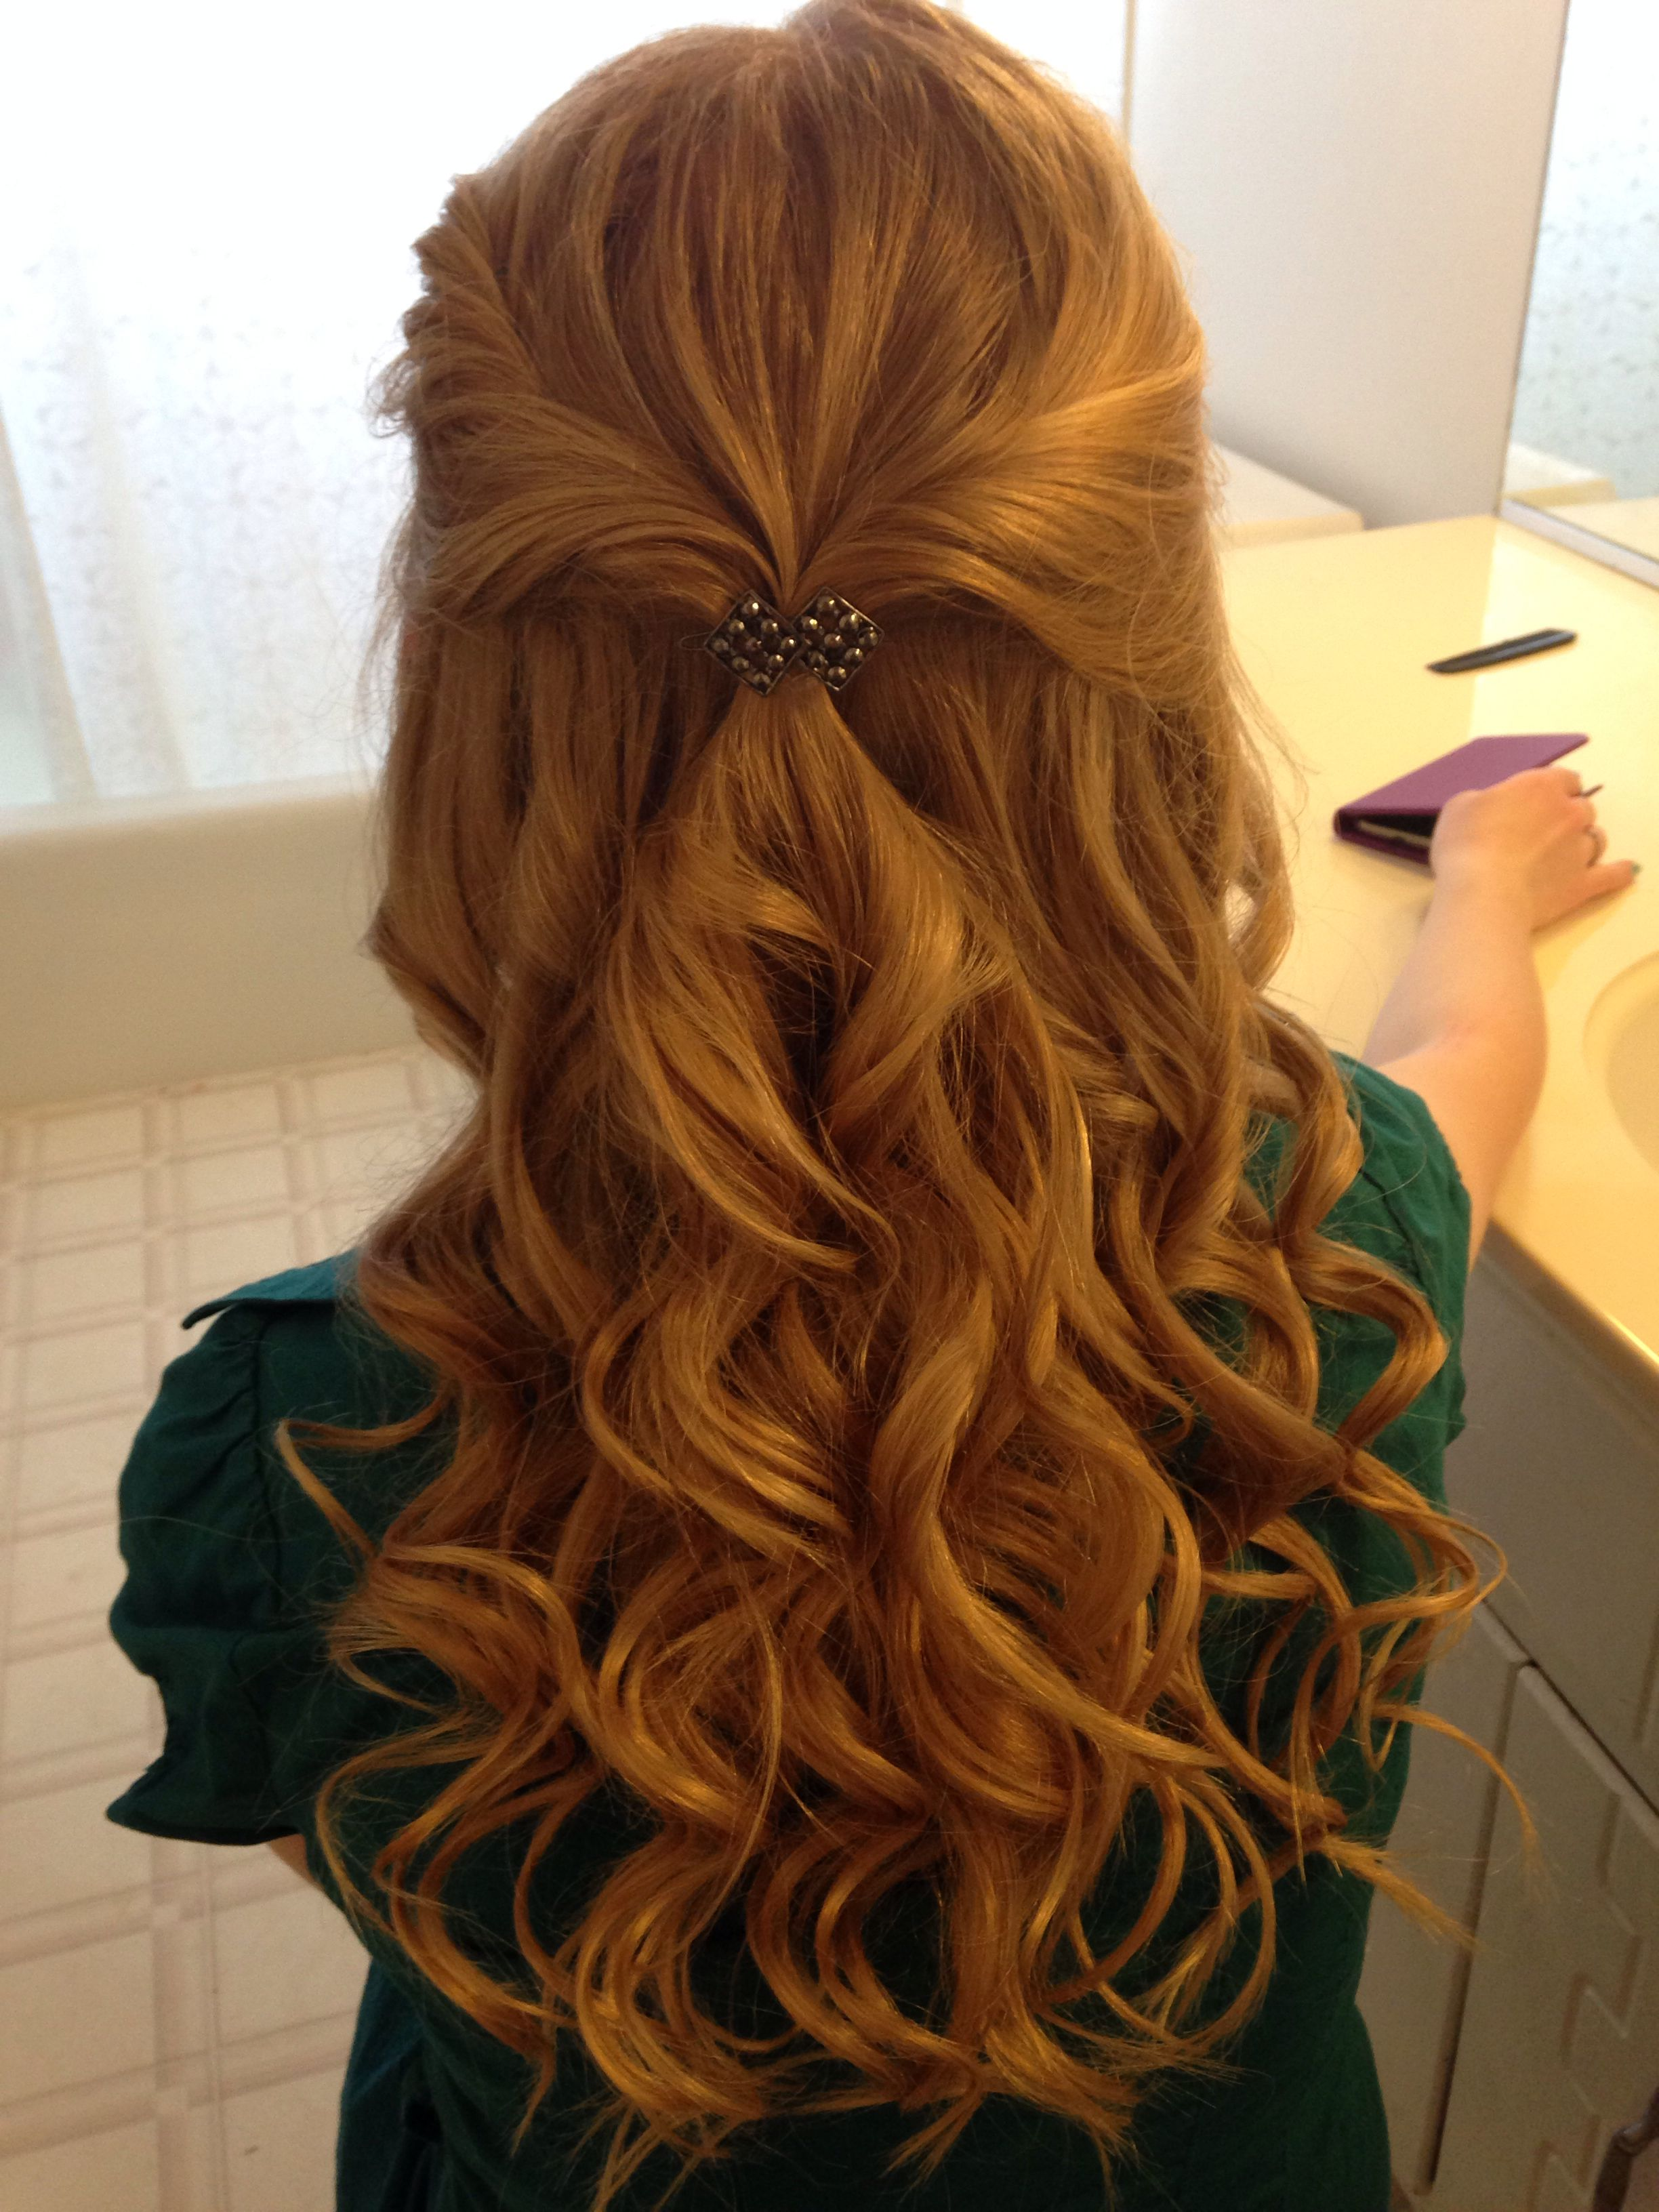 Curly Prom Hair Blonde Half Up Down Simple Homecoming Cute